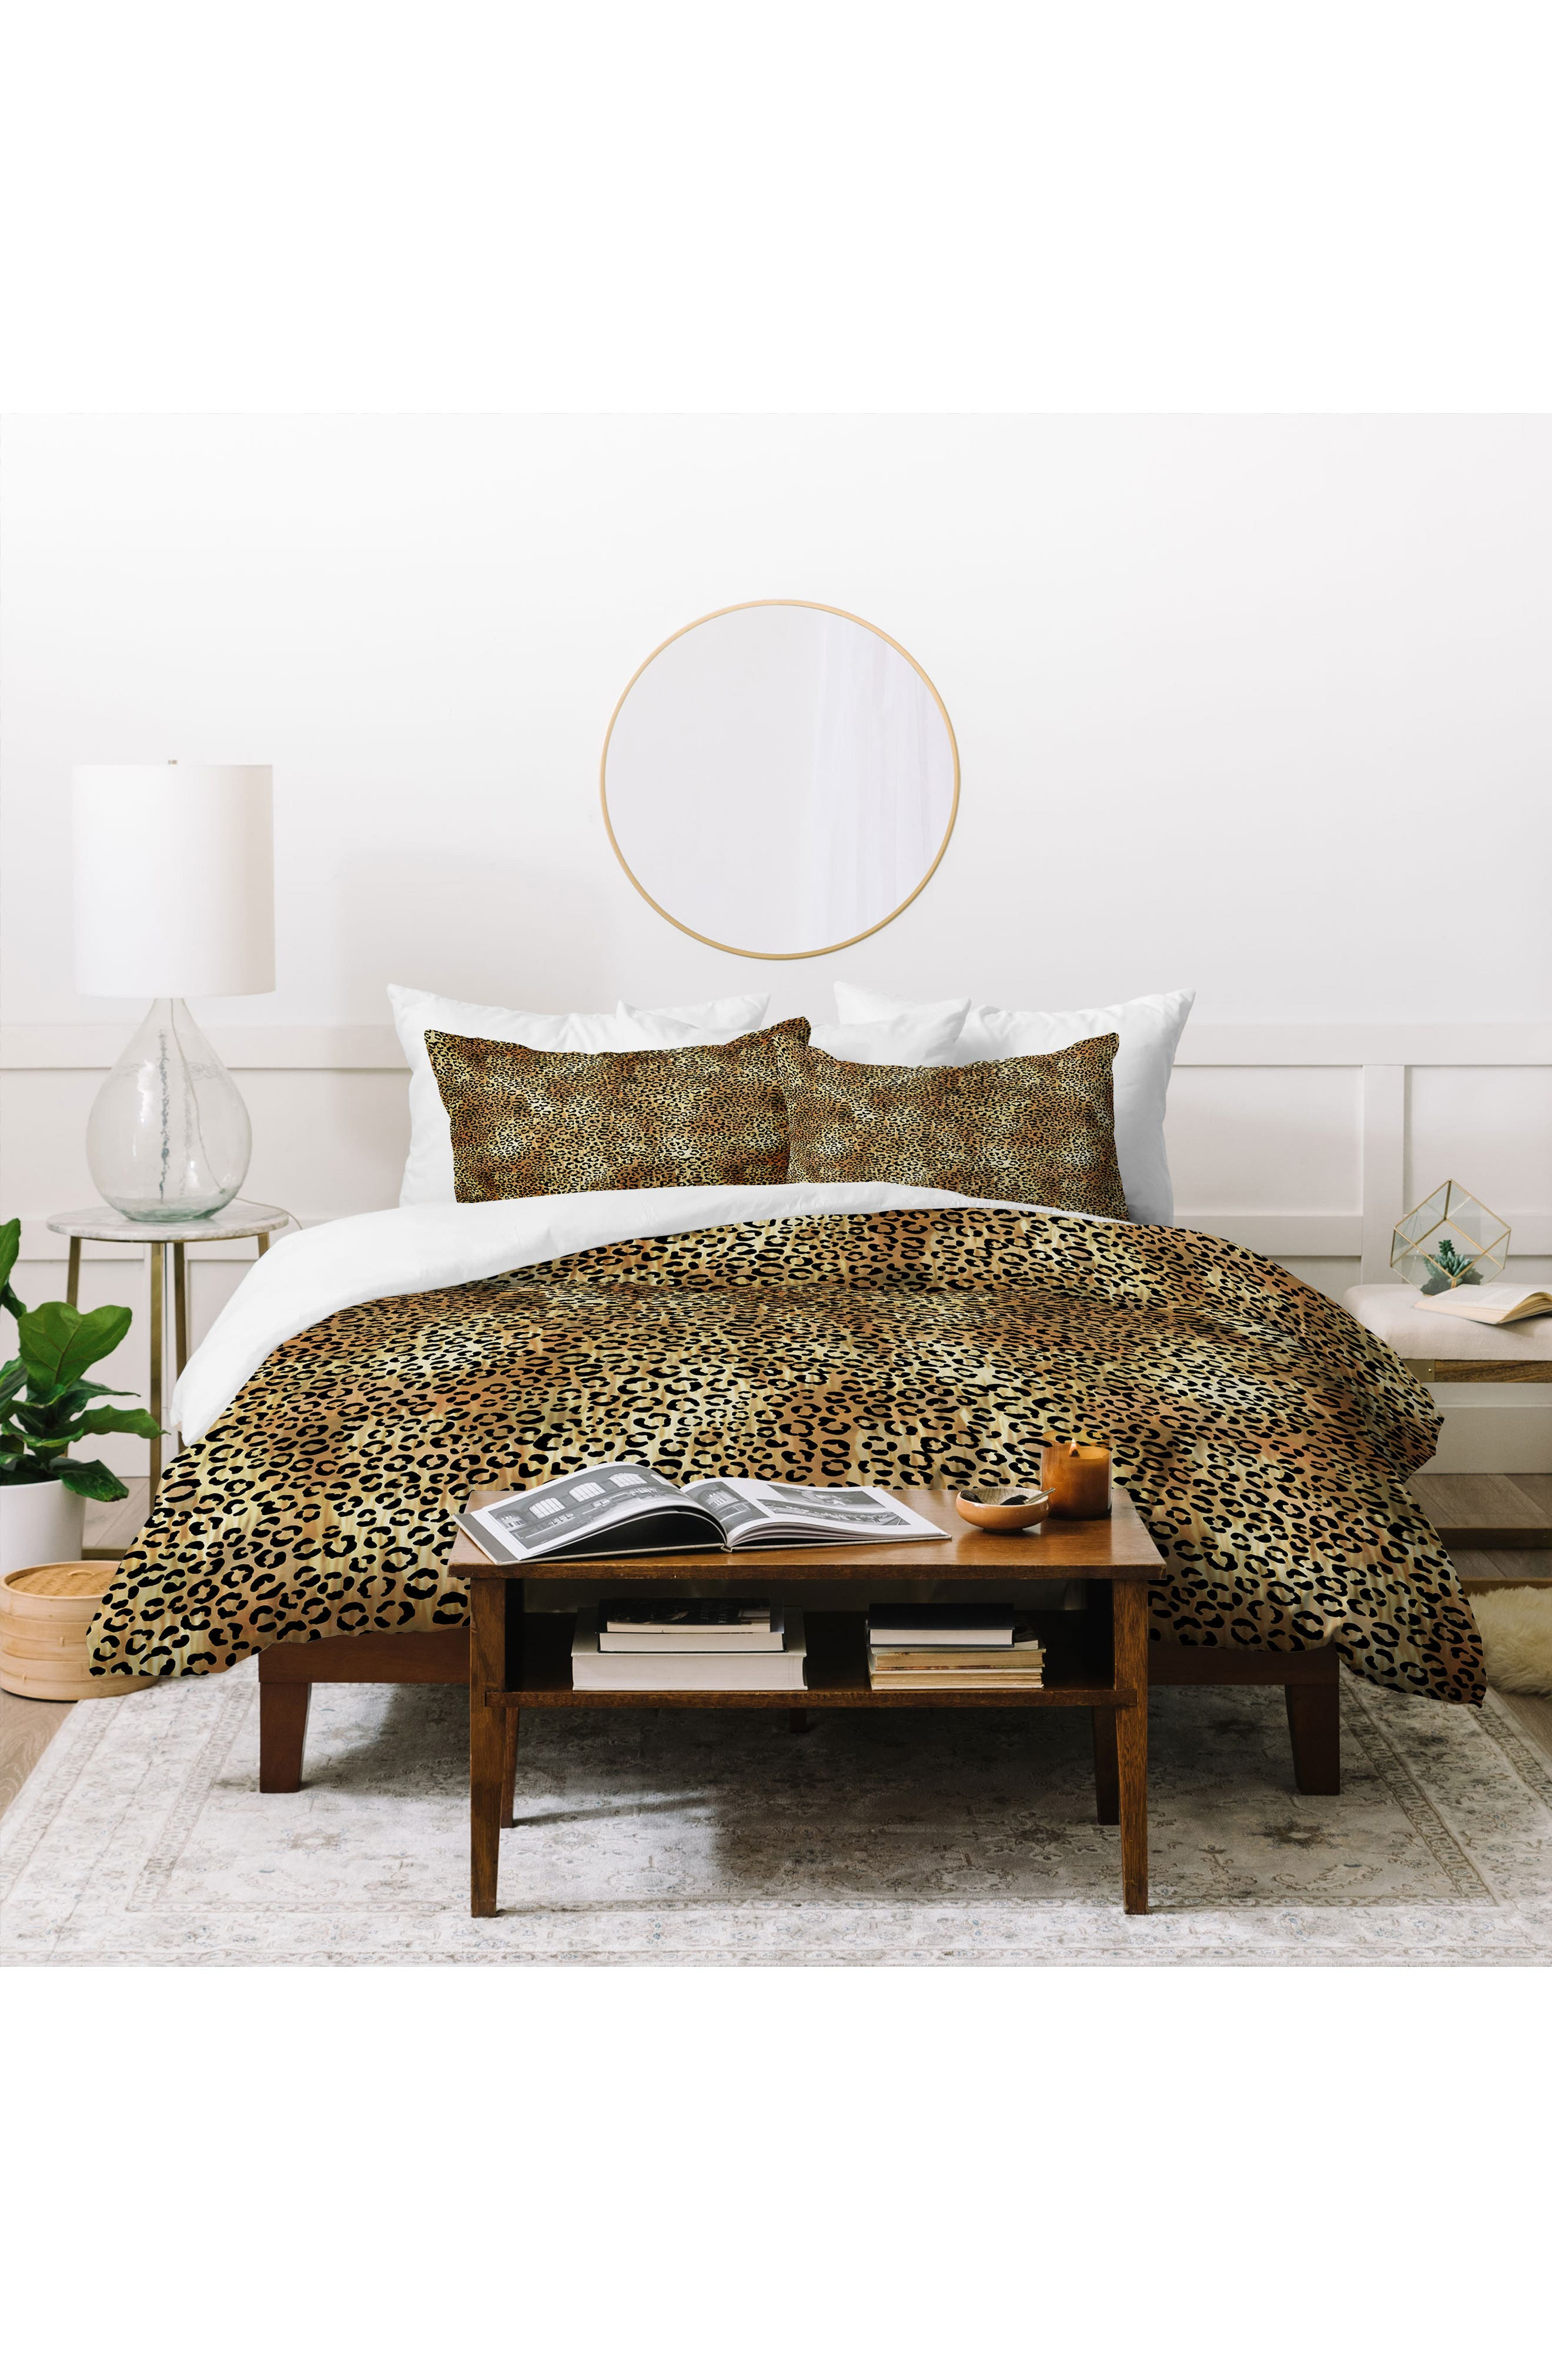 Stunning leopard spots pattern a standout duvet-cover set that will bring instant fierce appeal to any bedroom. Style Name: Deny Designs Schatzi Leopard Duvet Cover & Sham Set. Style Number: 6083330. Available in stores.